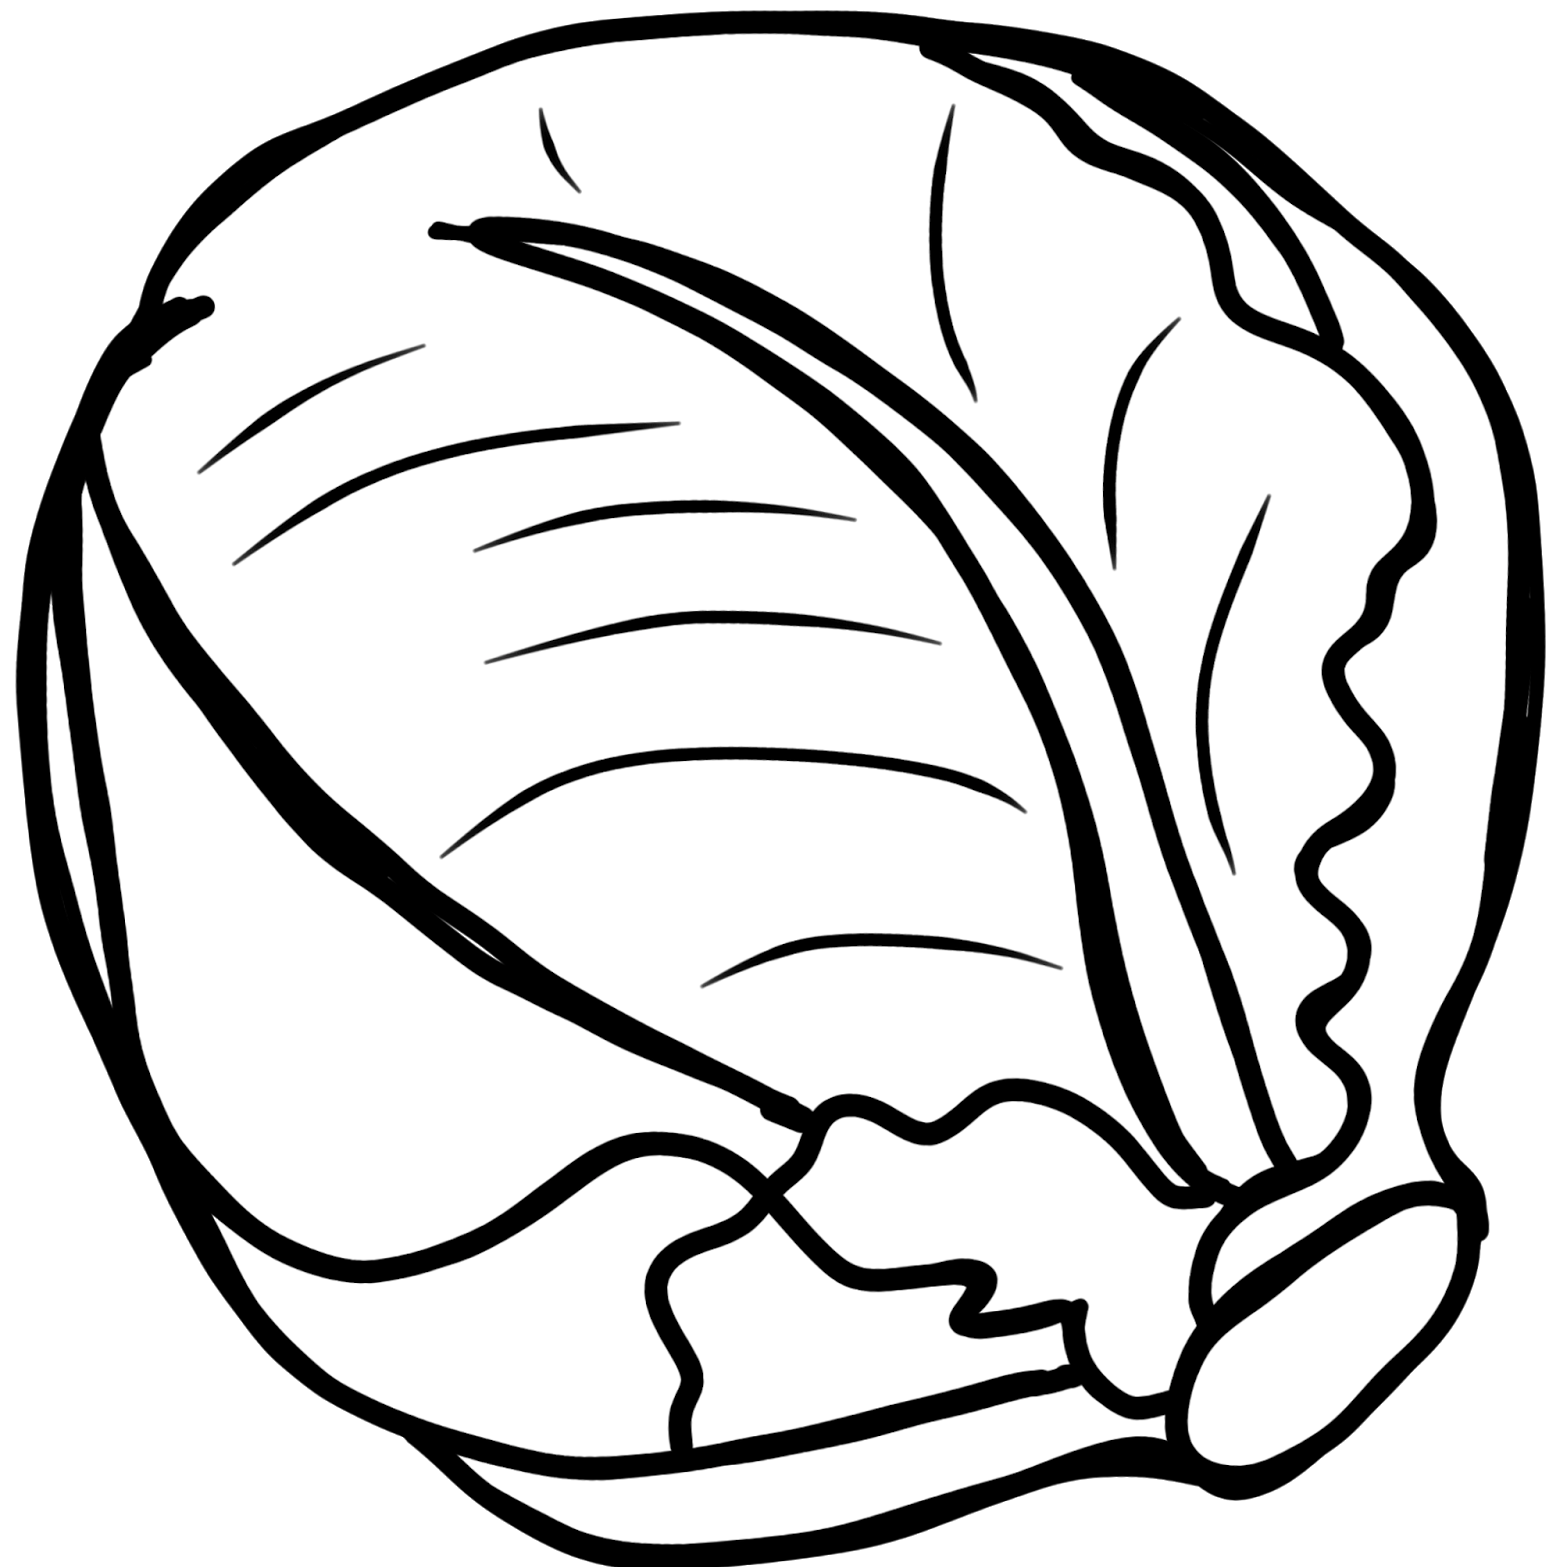 picture royalty free library Cabbage Drawing at GetDrawings